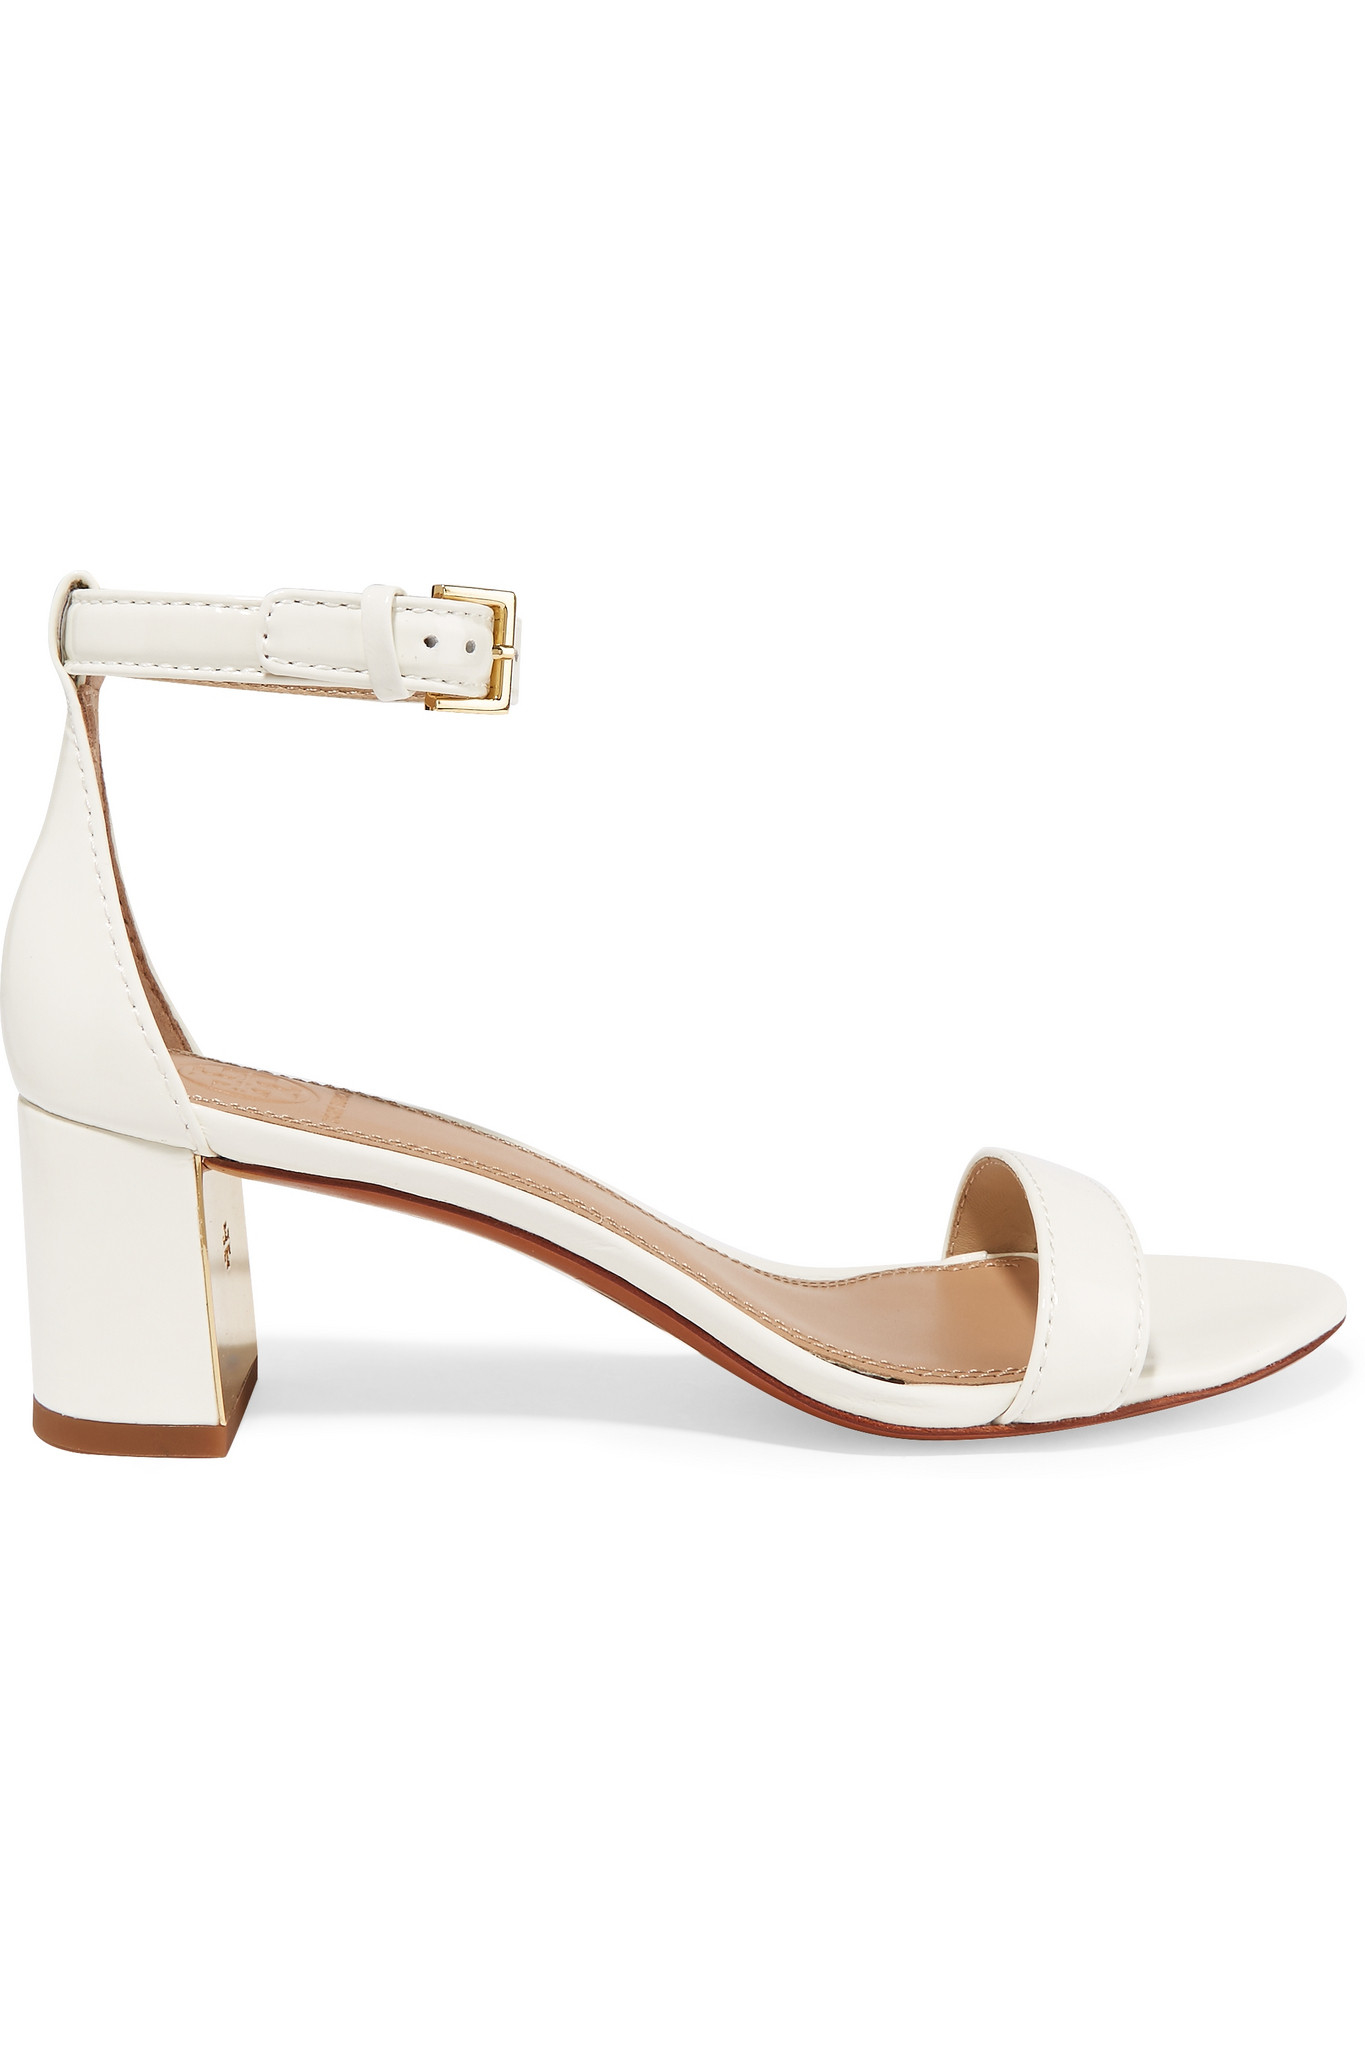 de23329f46b7 Tory Burch - Cecile Patent-leather Sandals - Ivory in White - Lyst